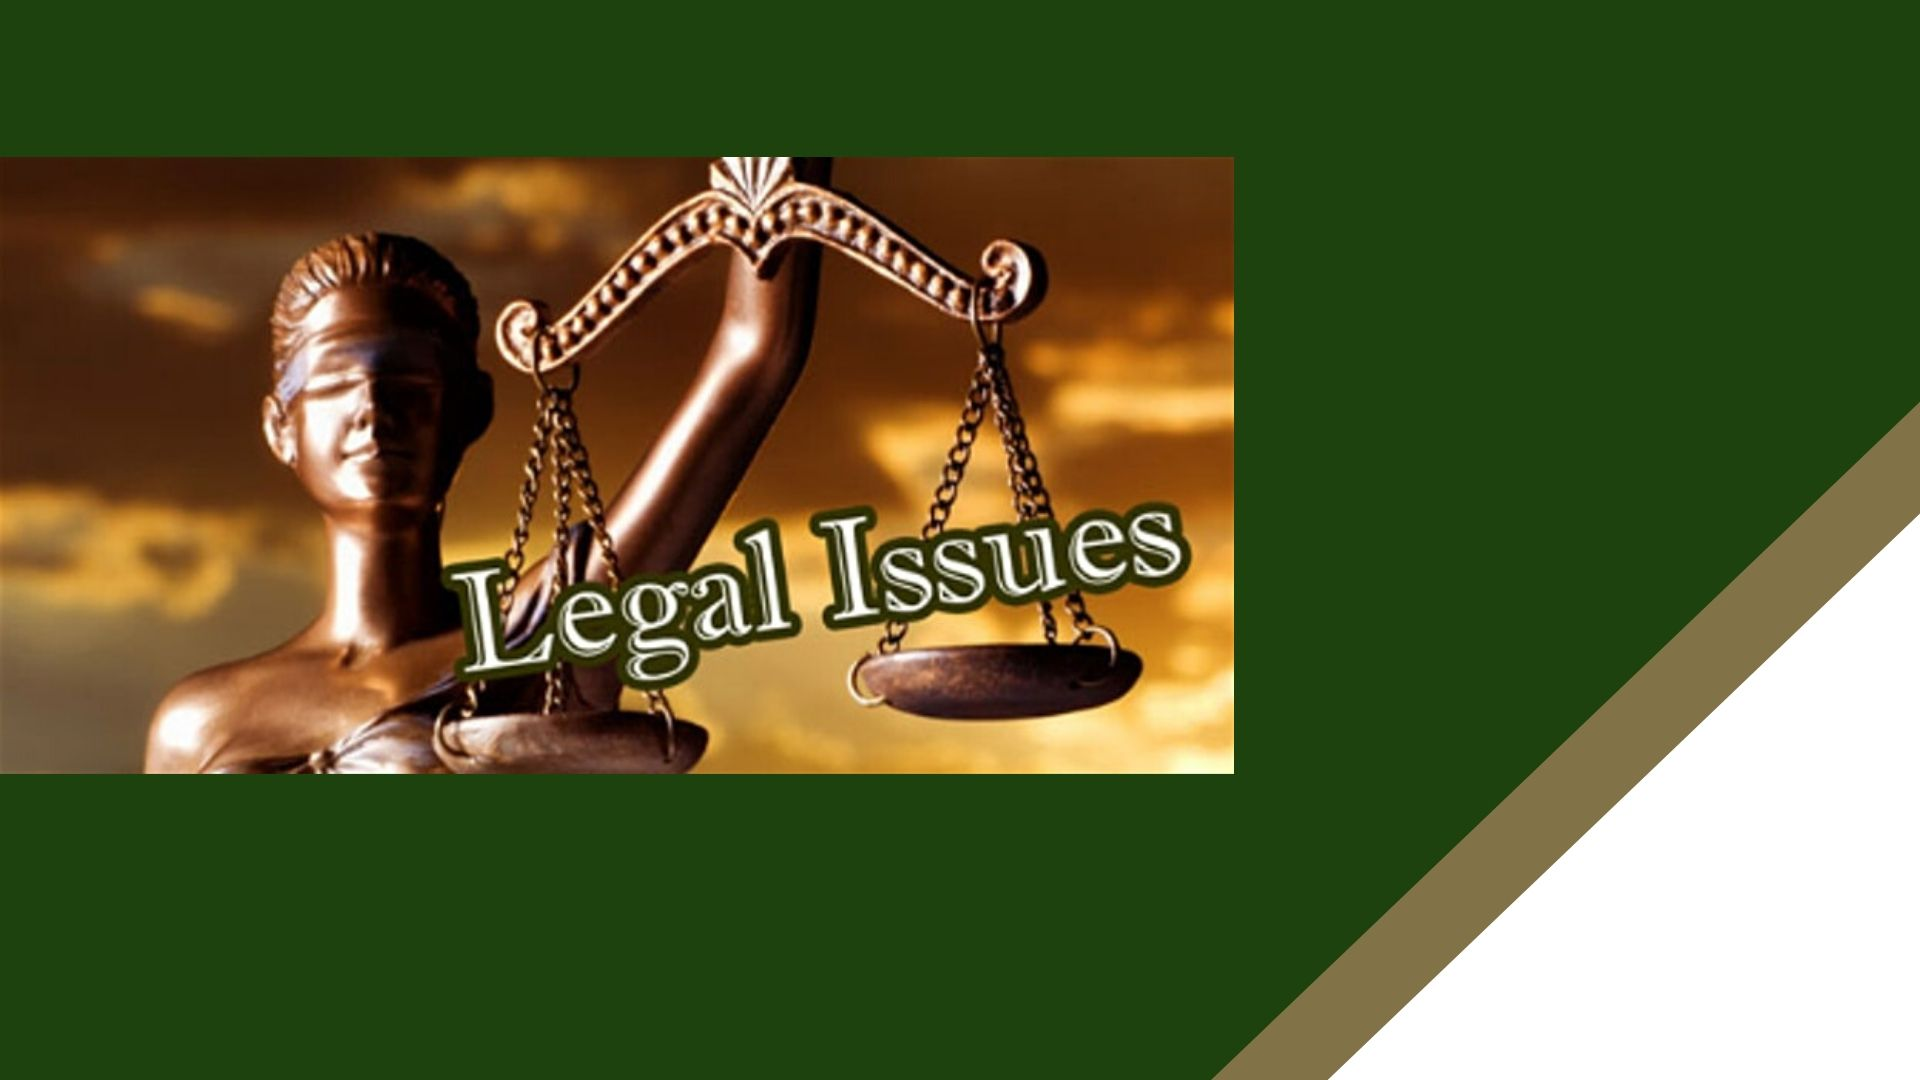 Legal Issues Workshop